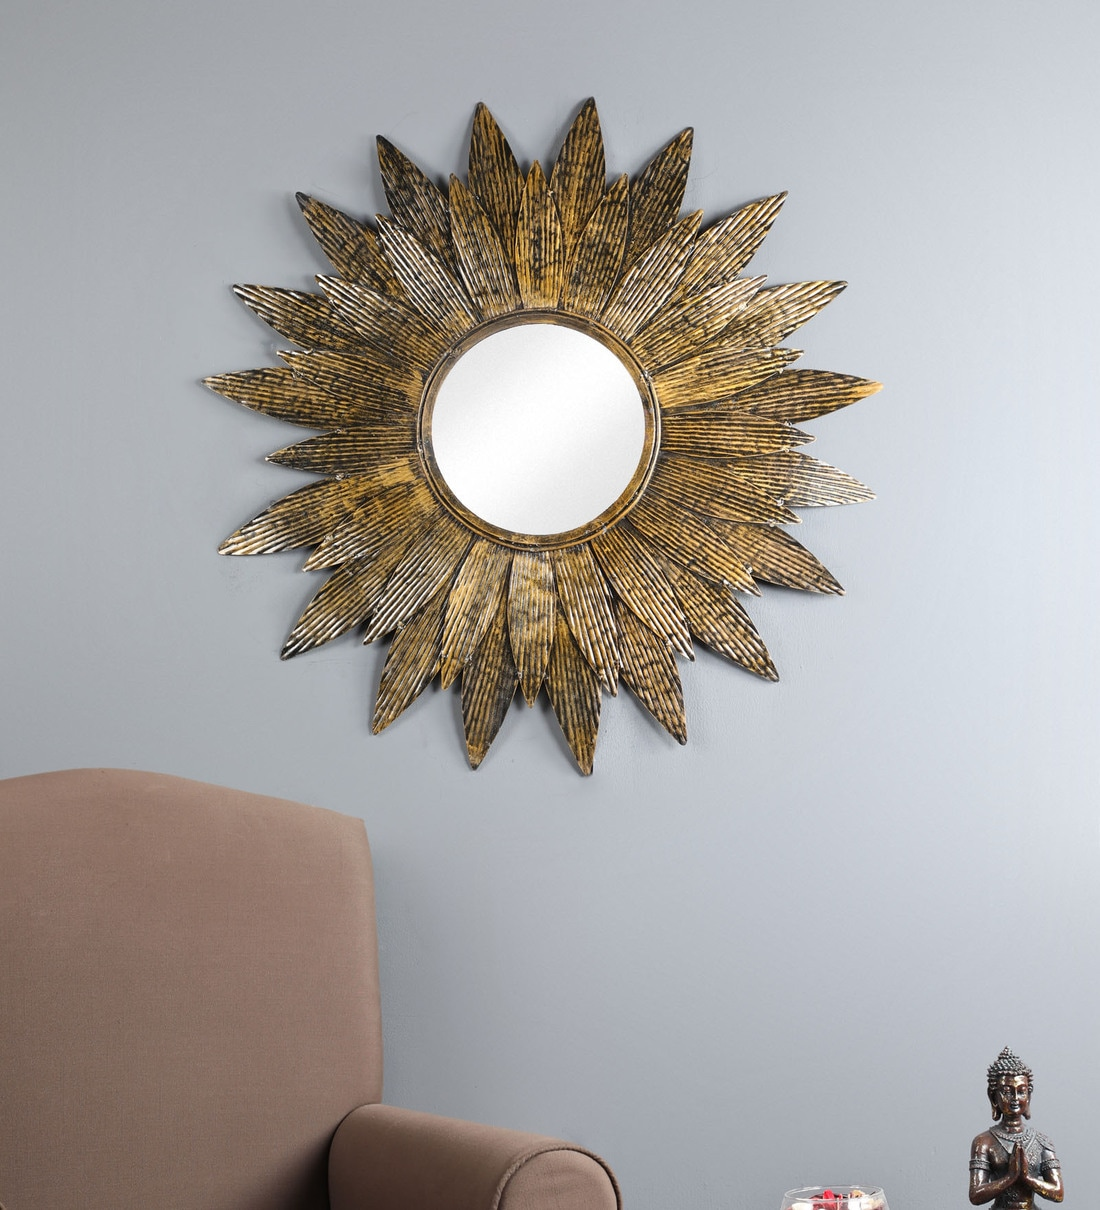 Buy Metal Round Wall Mirror In Gold Colour By Living Ideas Online Round Mirrors Wall Accents Home Decor Pepperfry Product